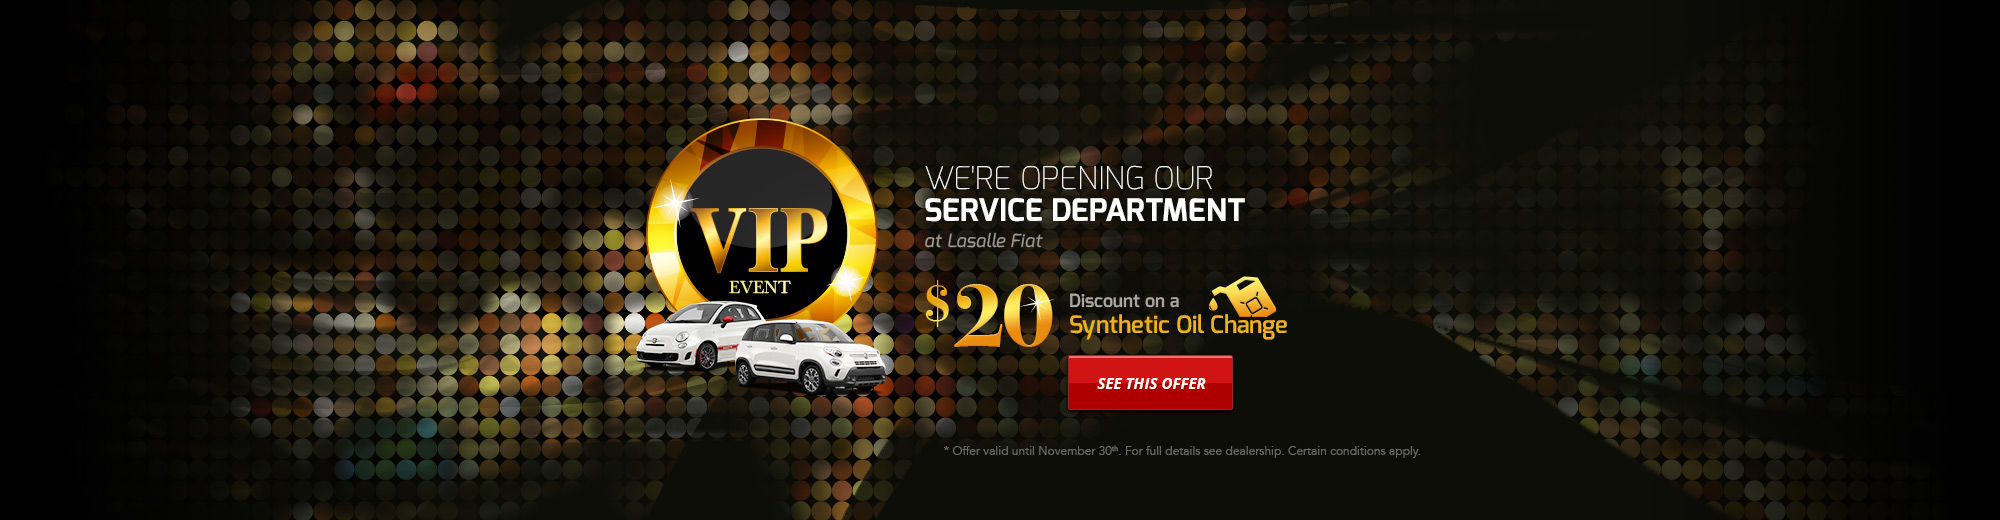 We're opening our Service Department